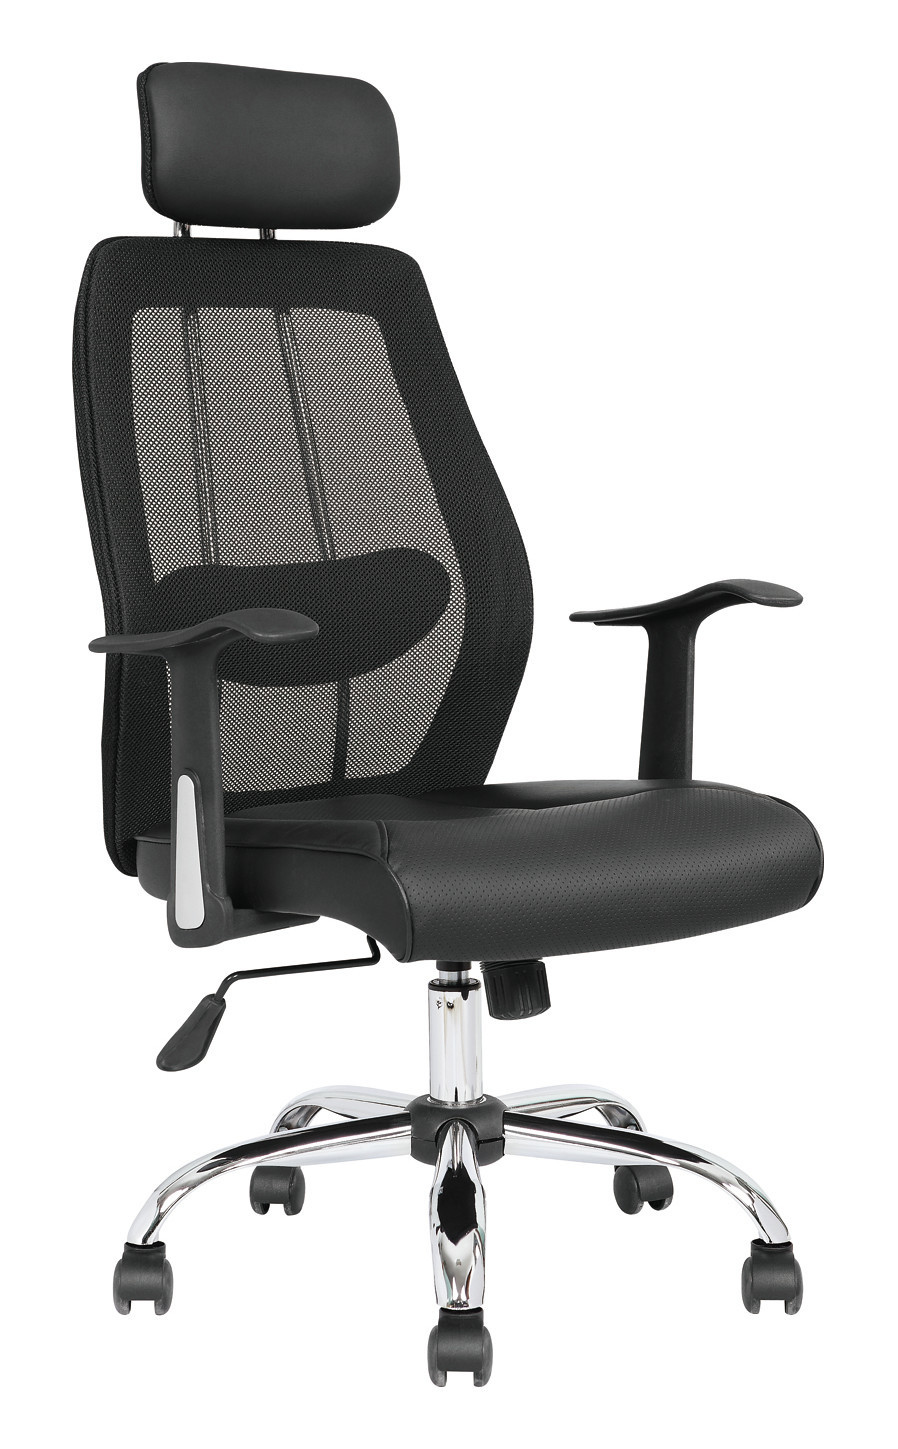 new ergo high back mesh office chair 139 00 features office chair